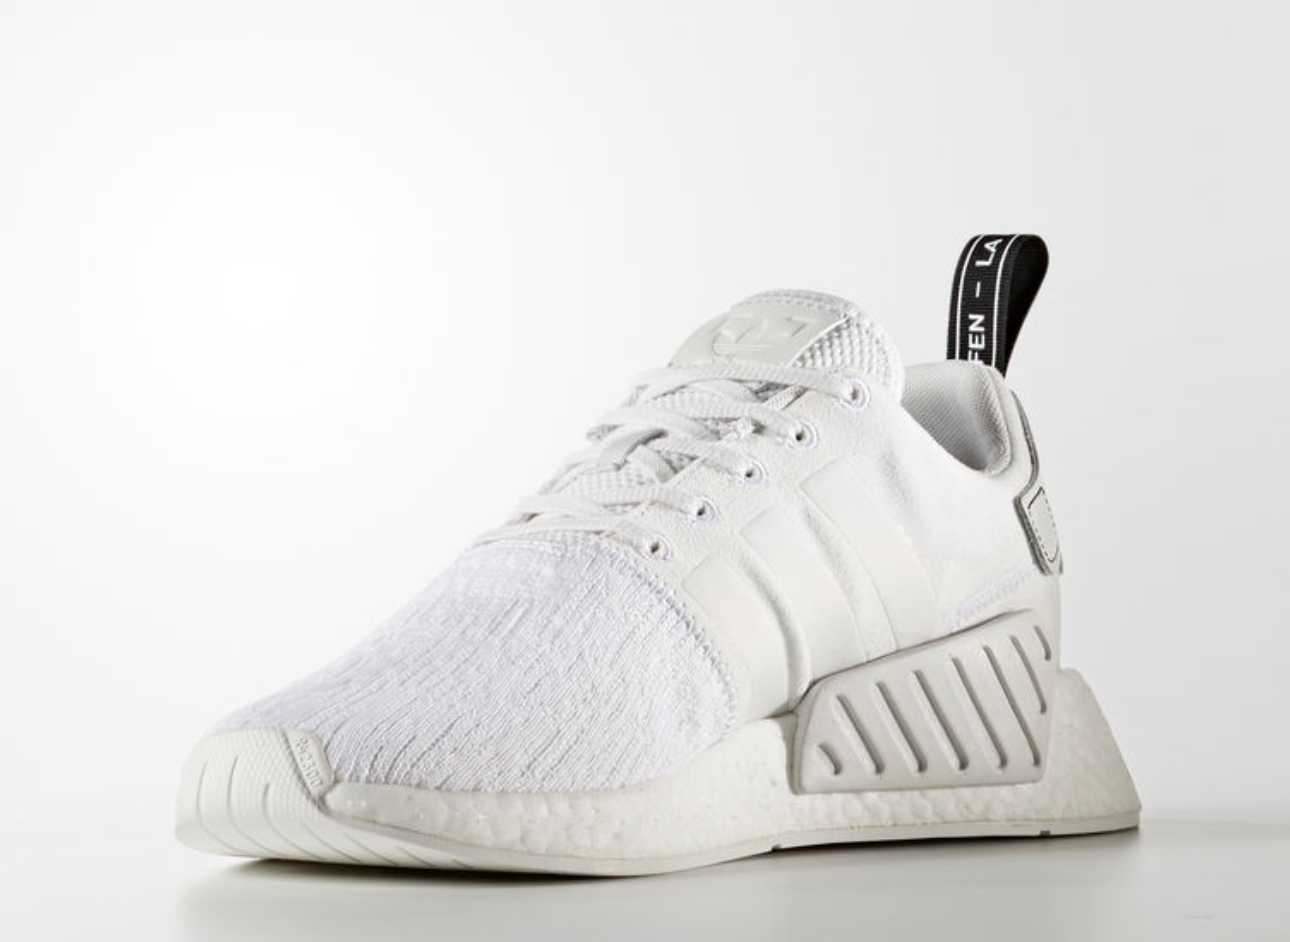 Adidas Originals NMD_R2 NMD_R2 NMD_R2 UK 4.5 EU 37 1 3 White Black Running shoes Trainers NEW 991773